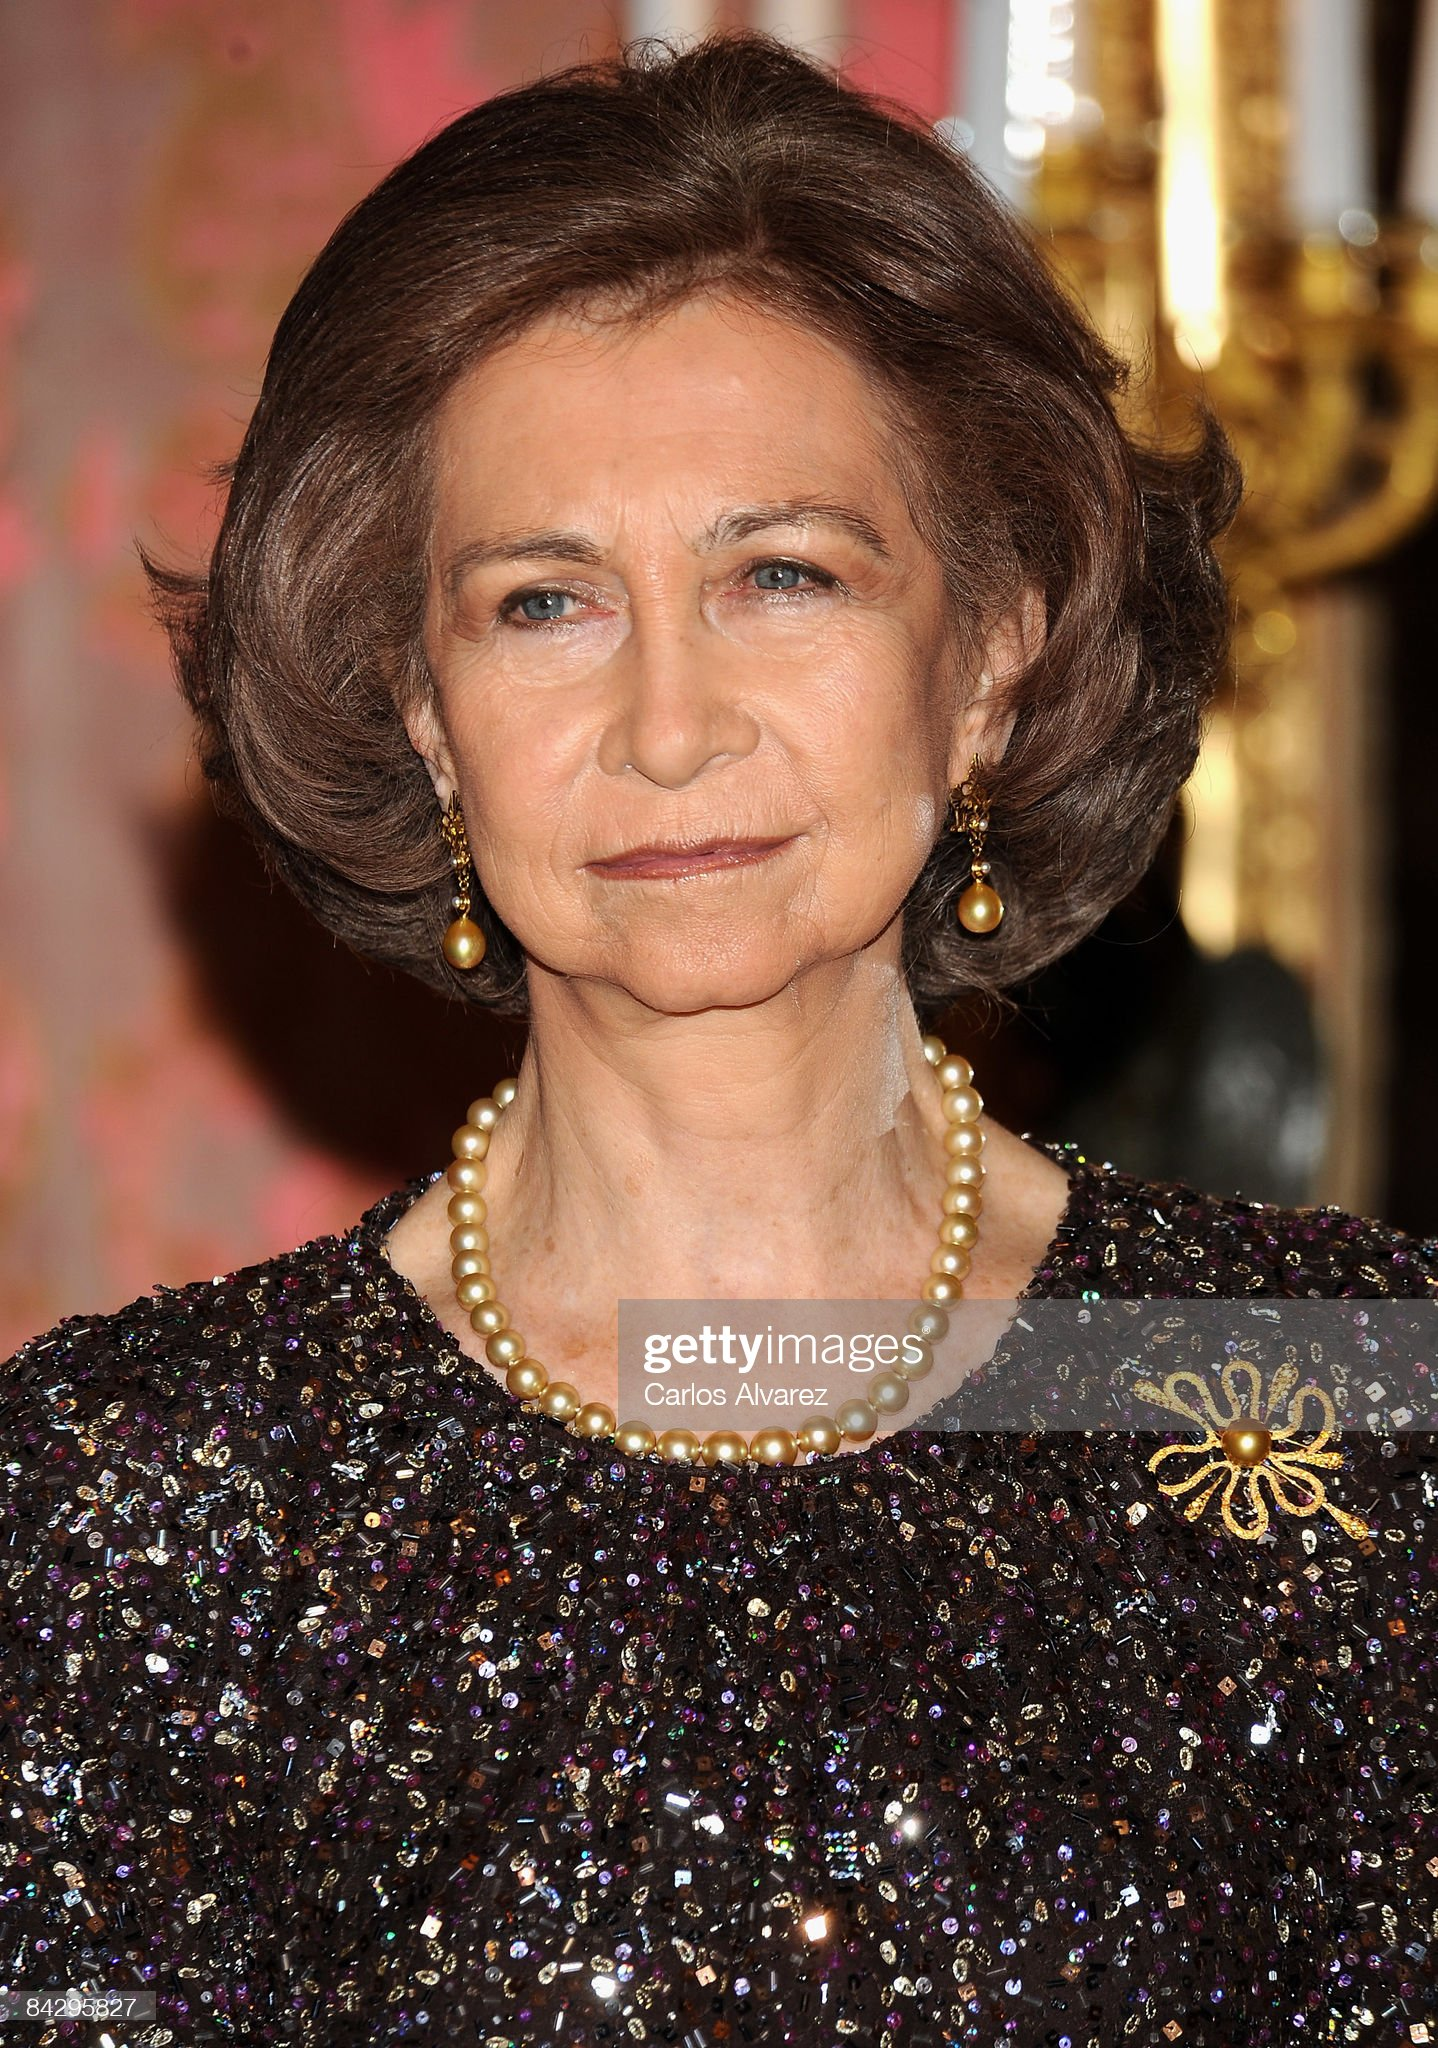 Spanish Royals Attend Zarzuela Palace : News Photo